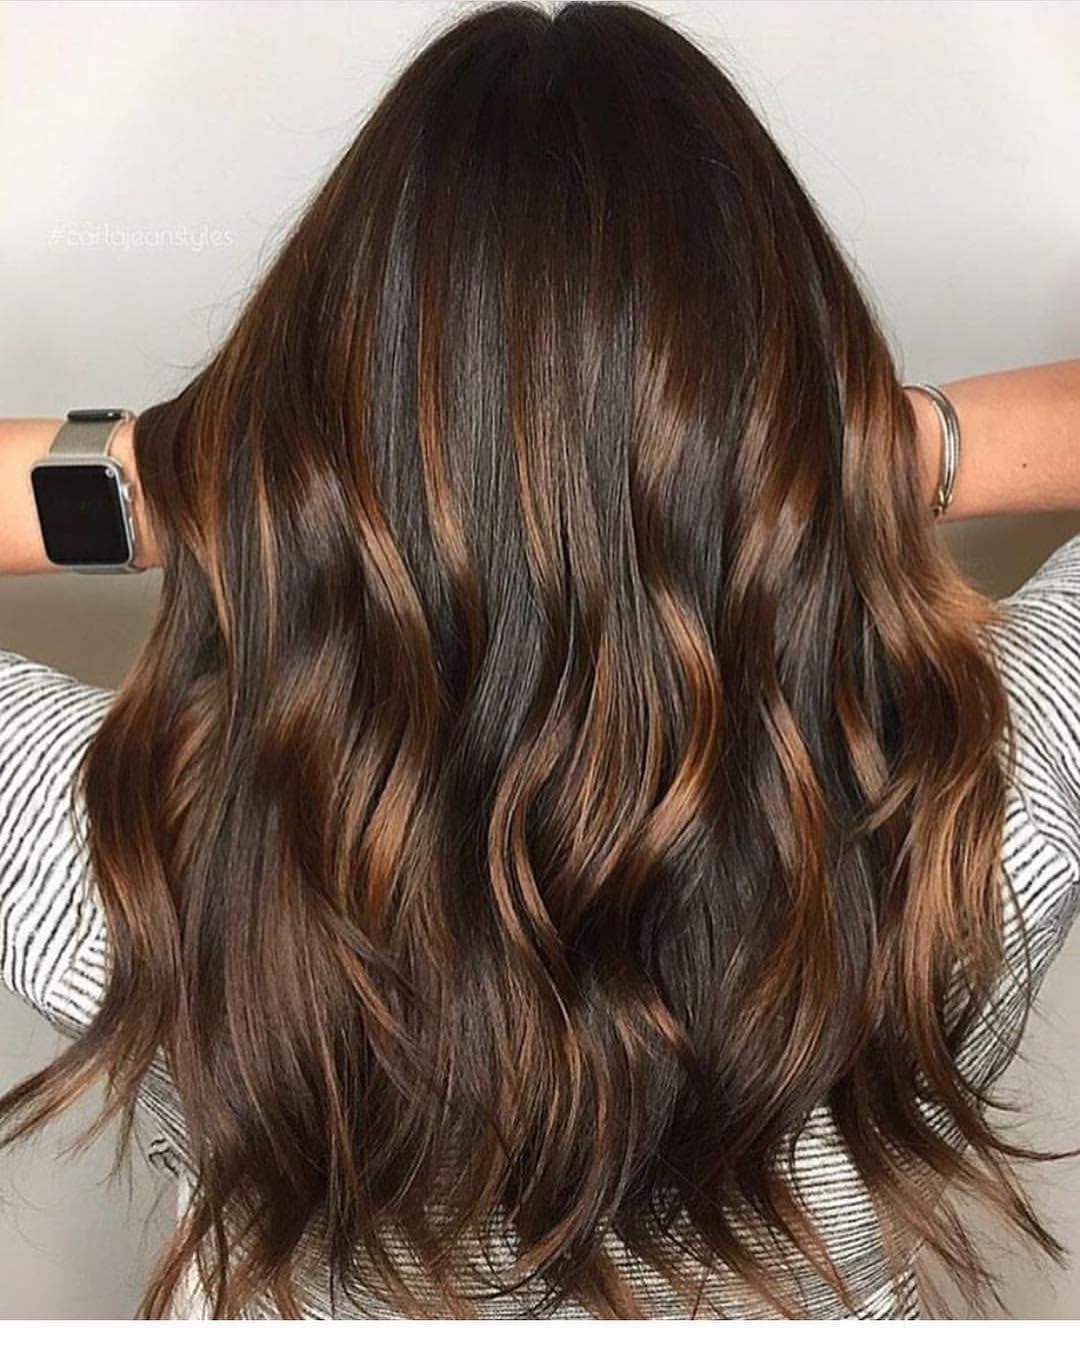 25 Stunning Examples of Brown Ombré Hair to Bring to Your Colorist 25 Stunning Examples of Brown Ombré Hair to Bring to Your Colorist new pictures